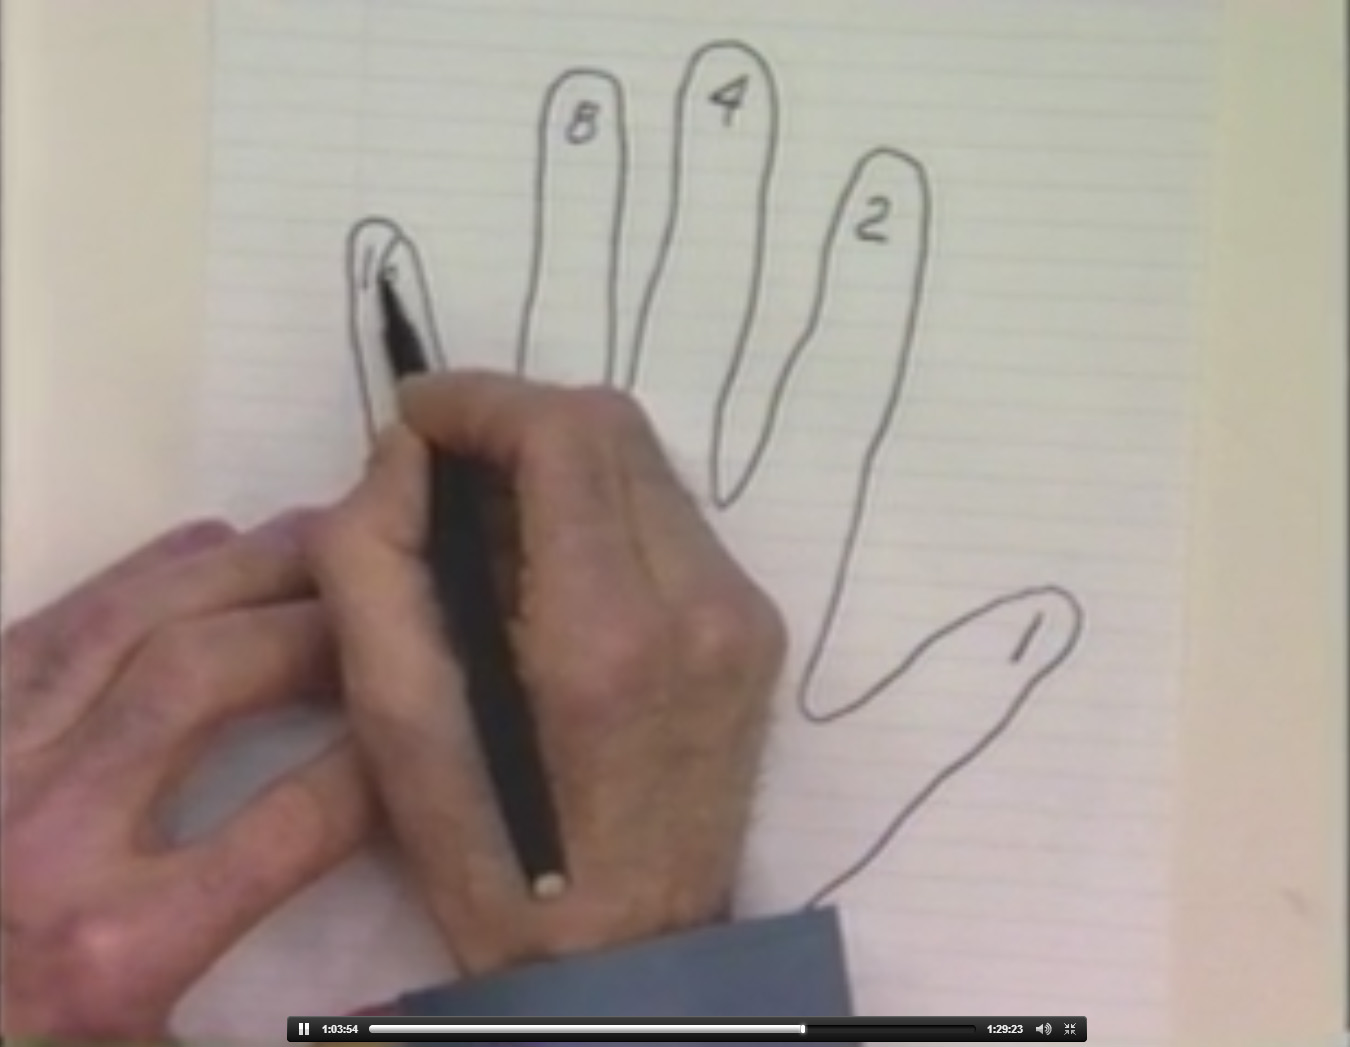 tracing hand and numbering fingers